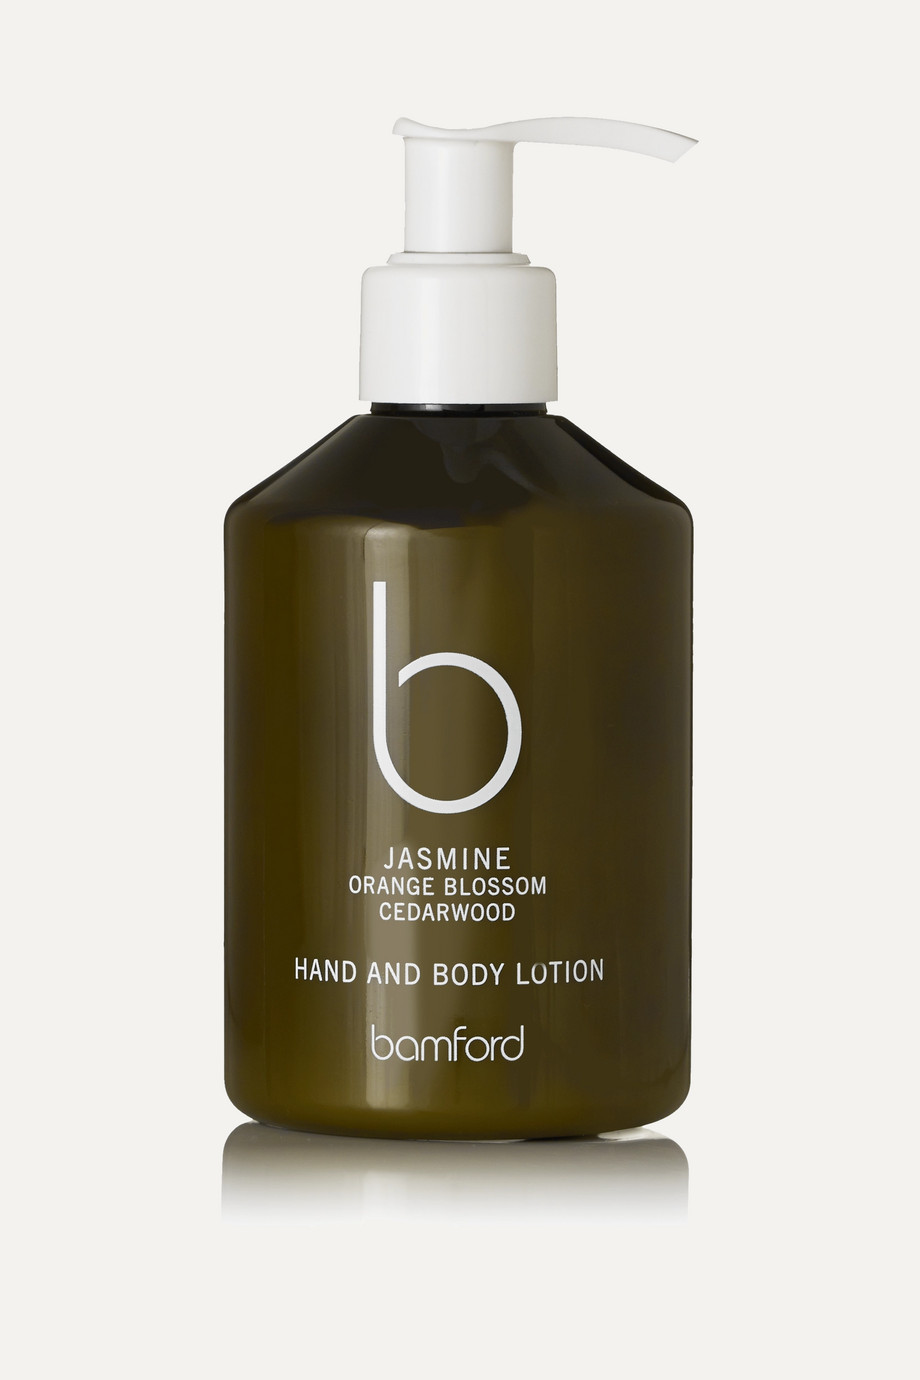 BAMFORD Jasmine Hand & Body Lotion, 250ml